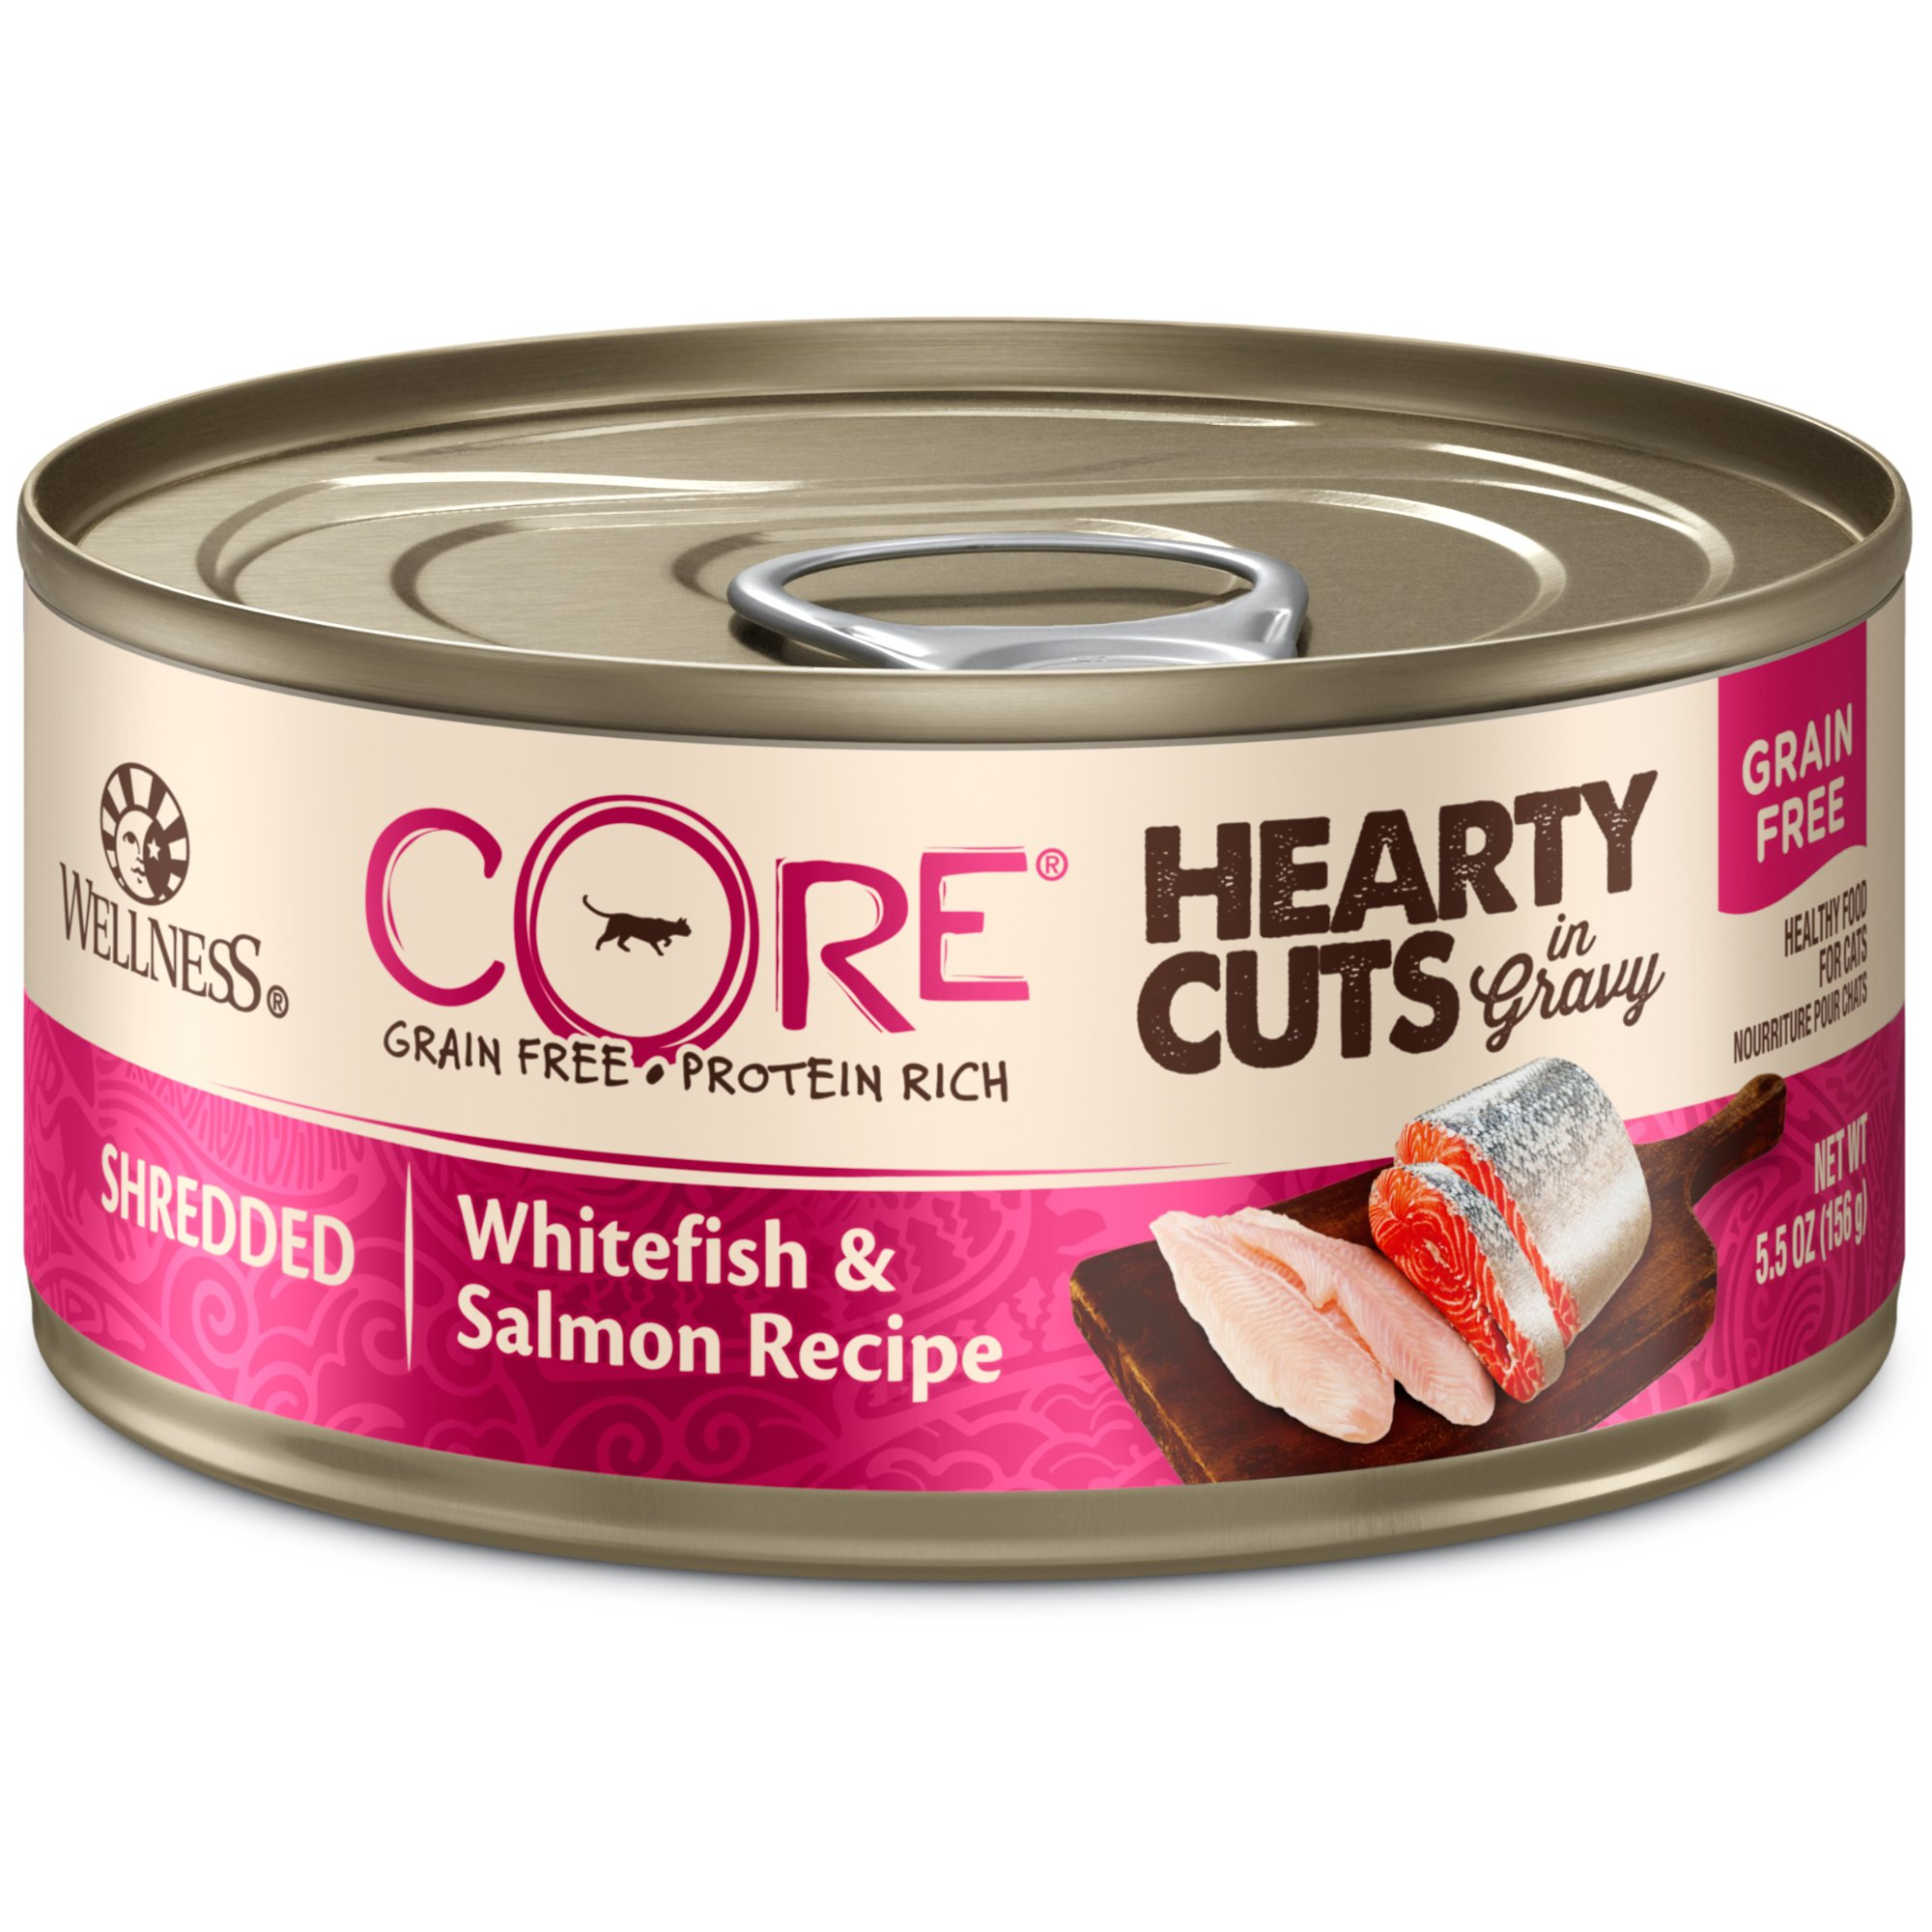 Wellness Core Hearty Cuts Natural Grain Free Whitefish